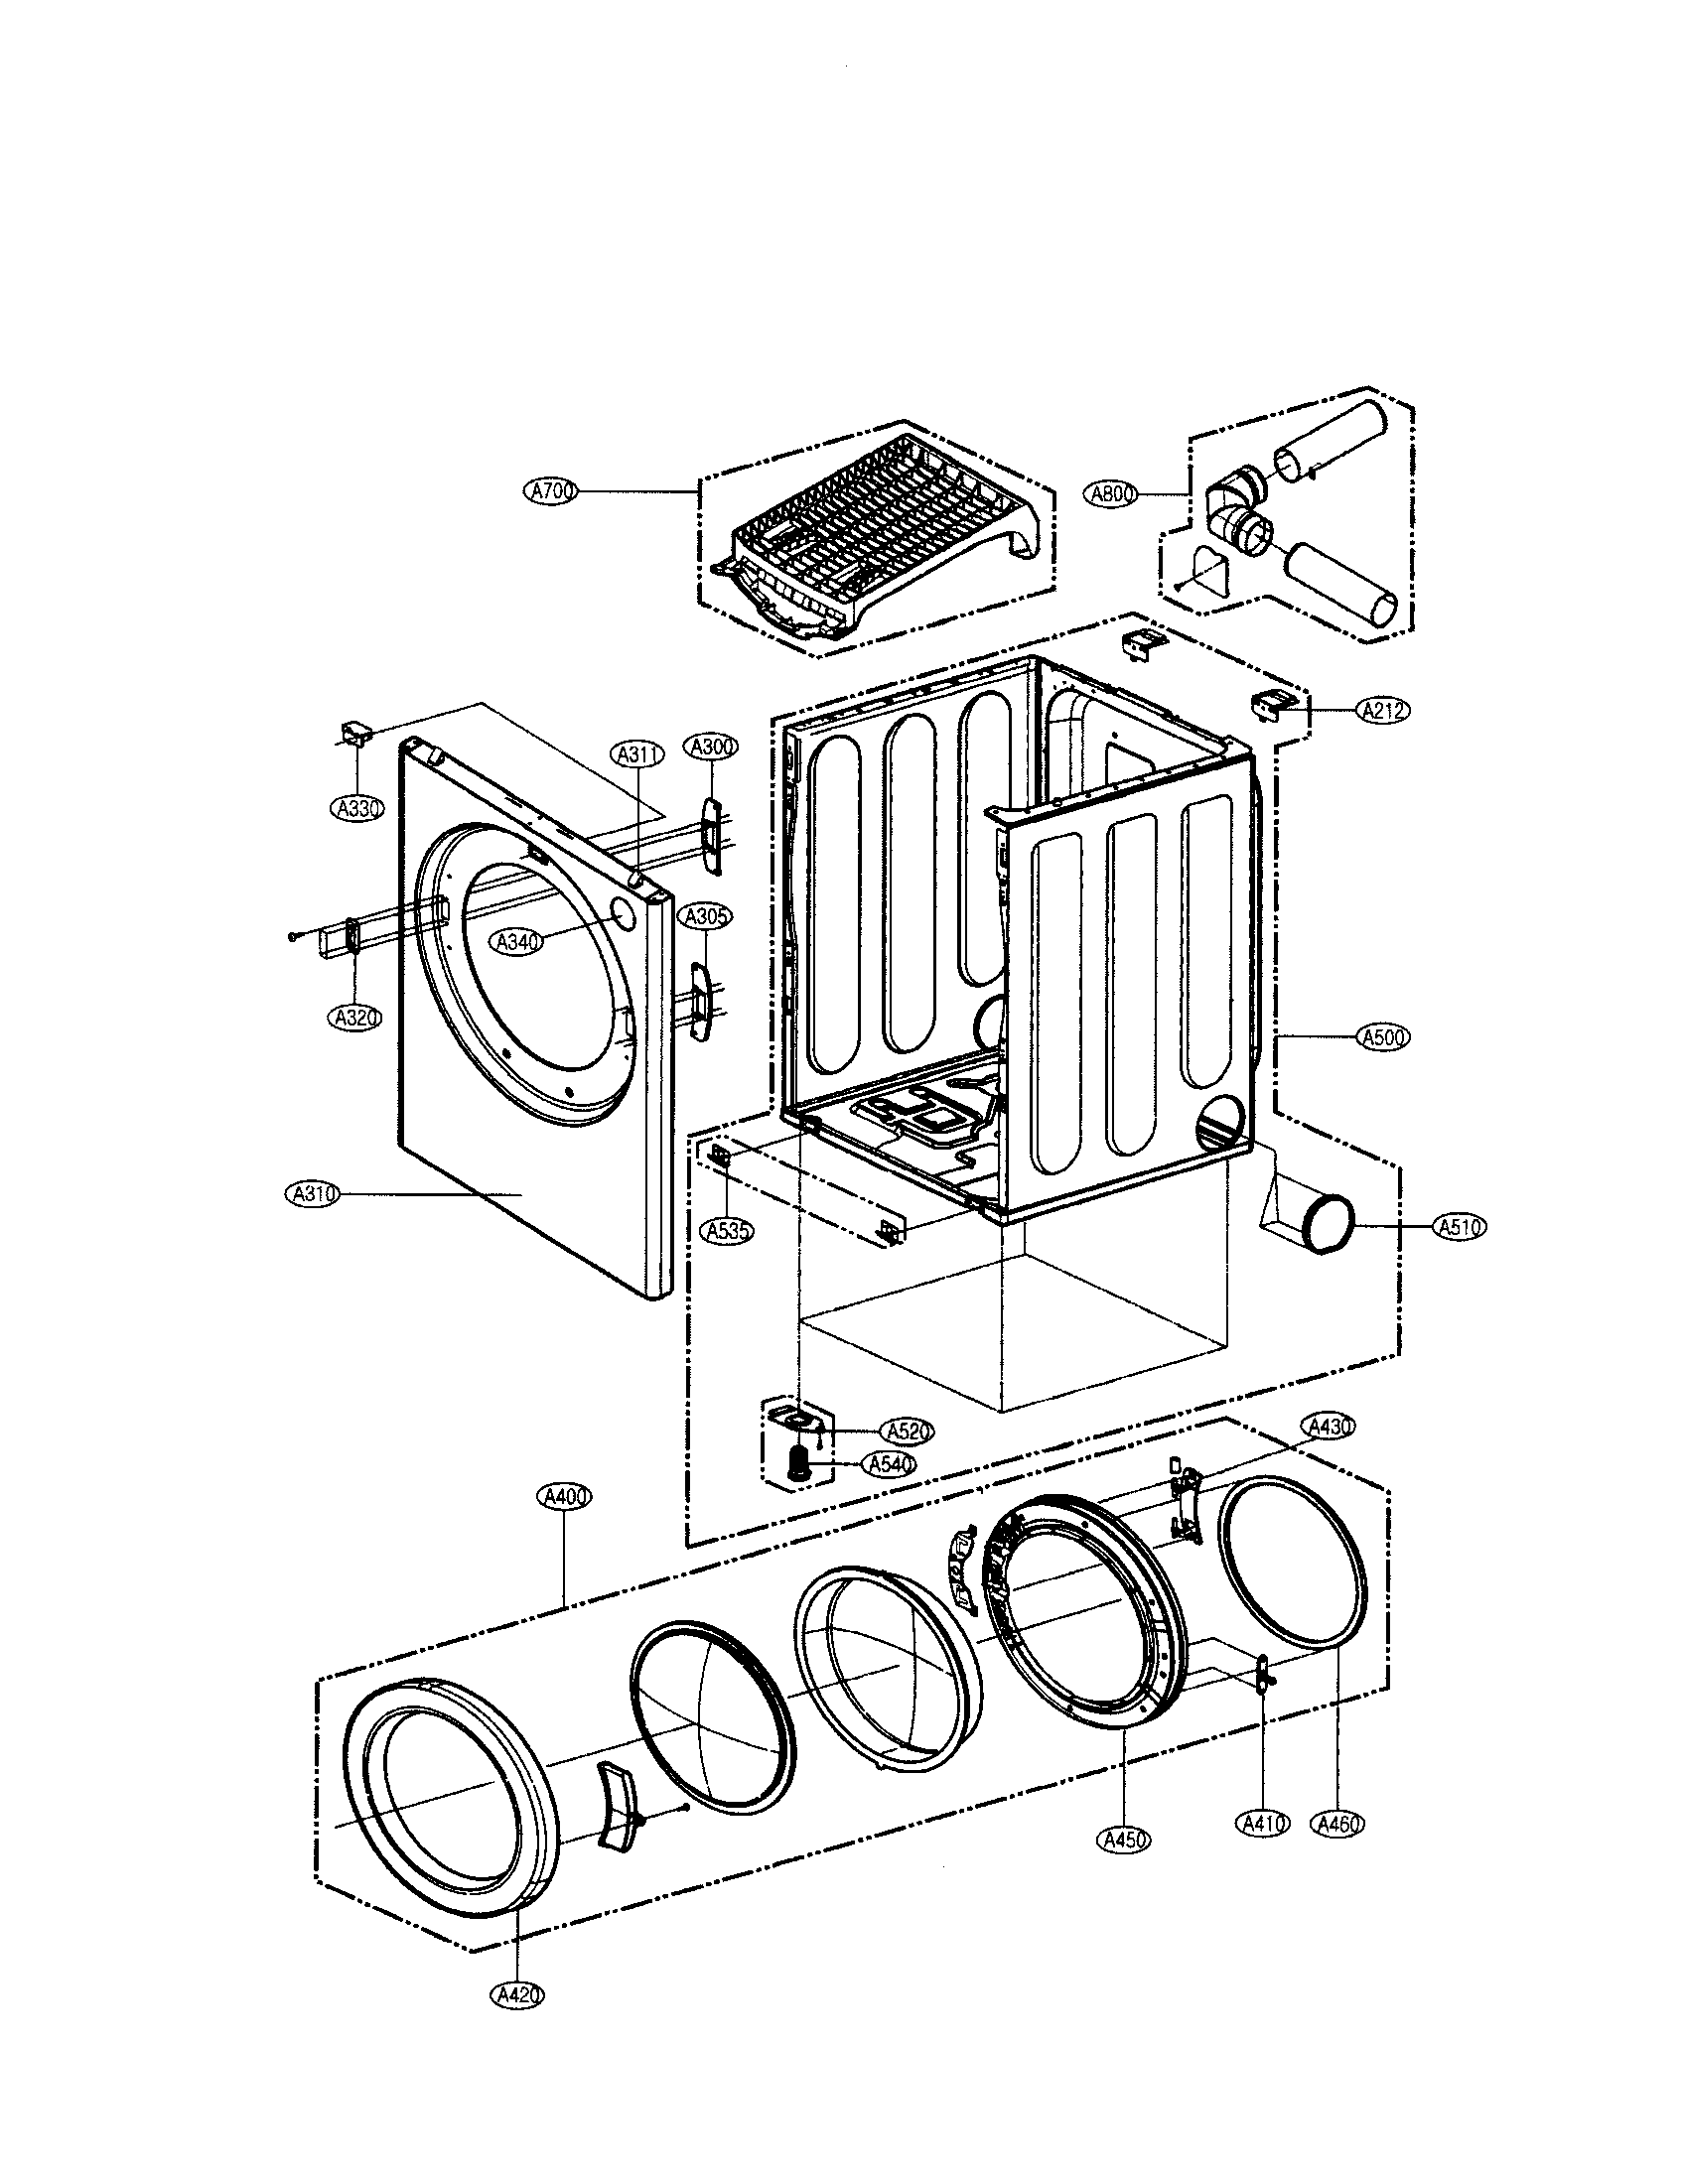 Lg model DLE0332W residential dryer genuine parts